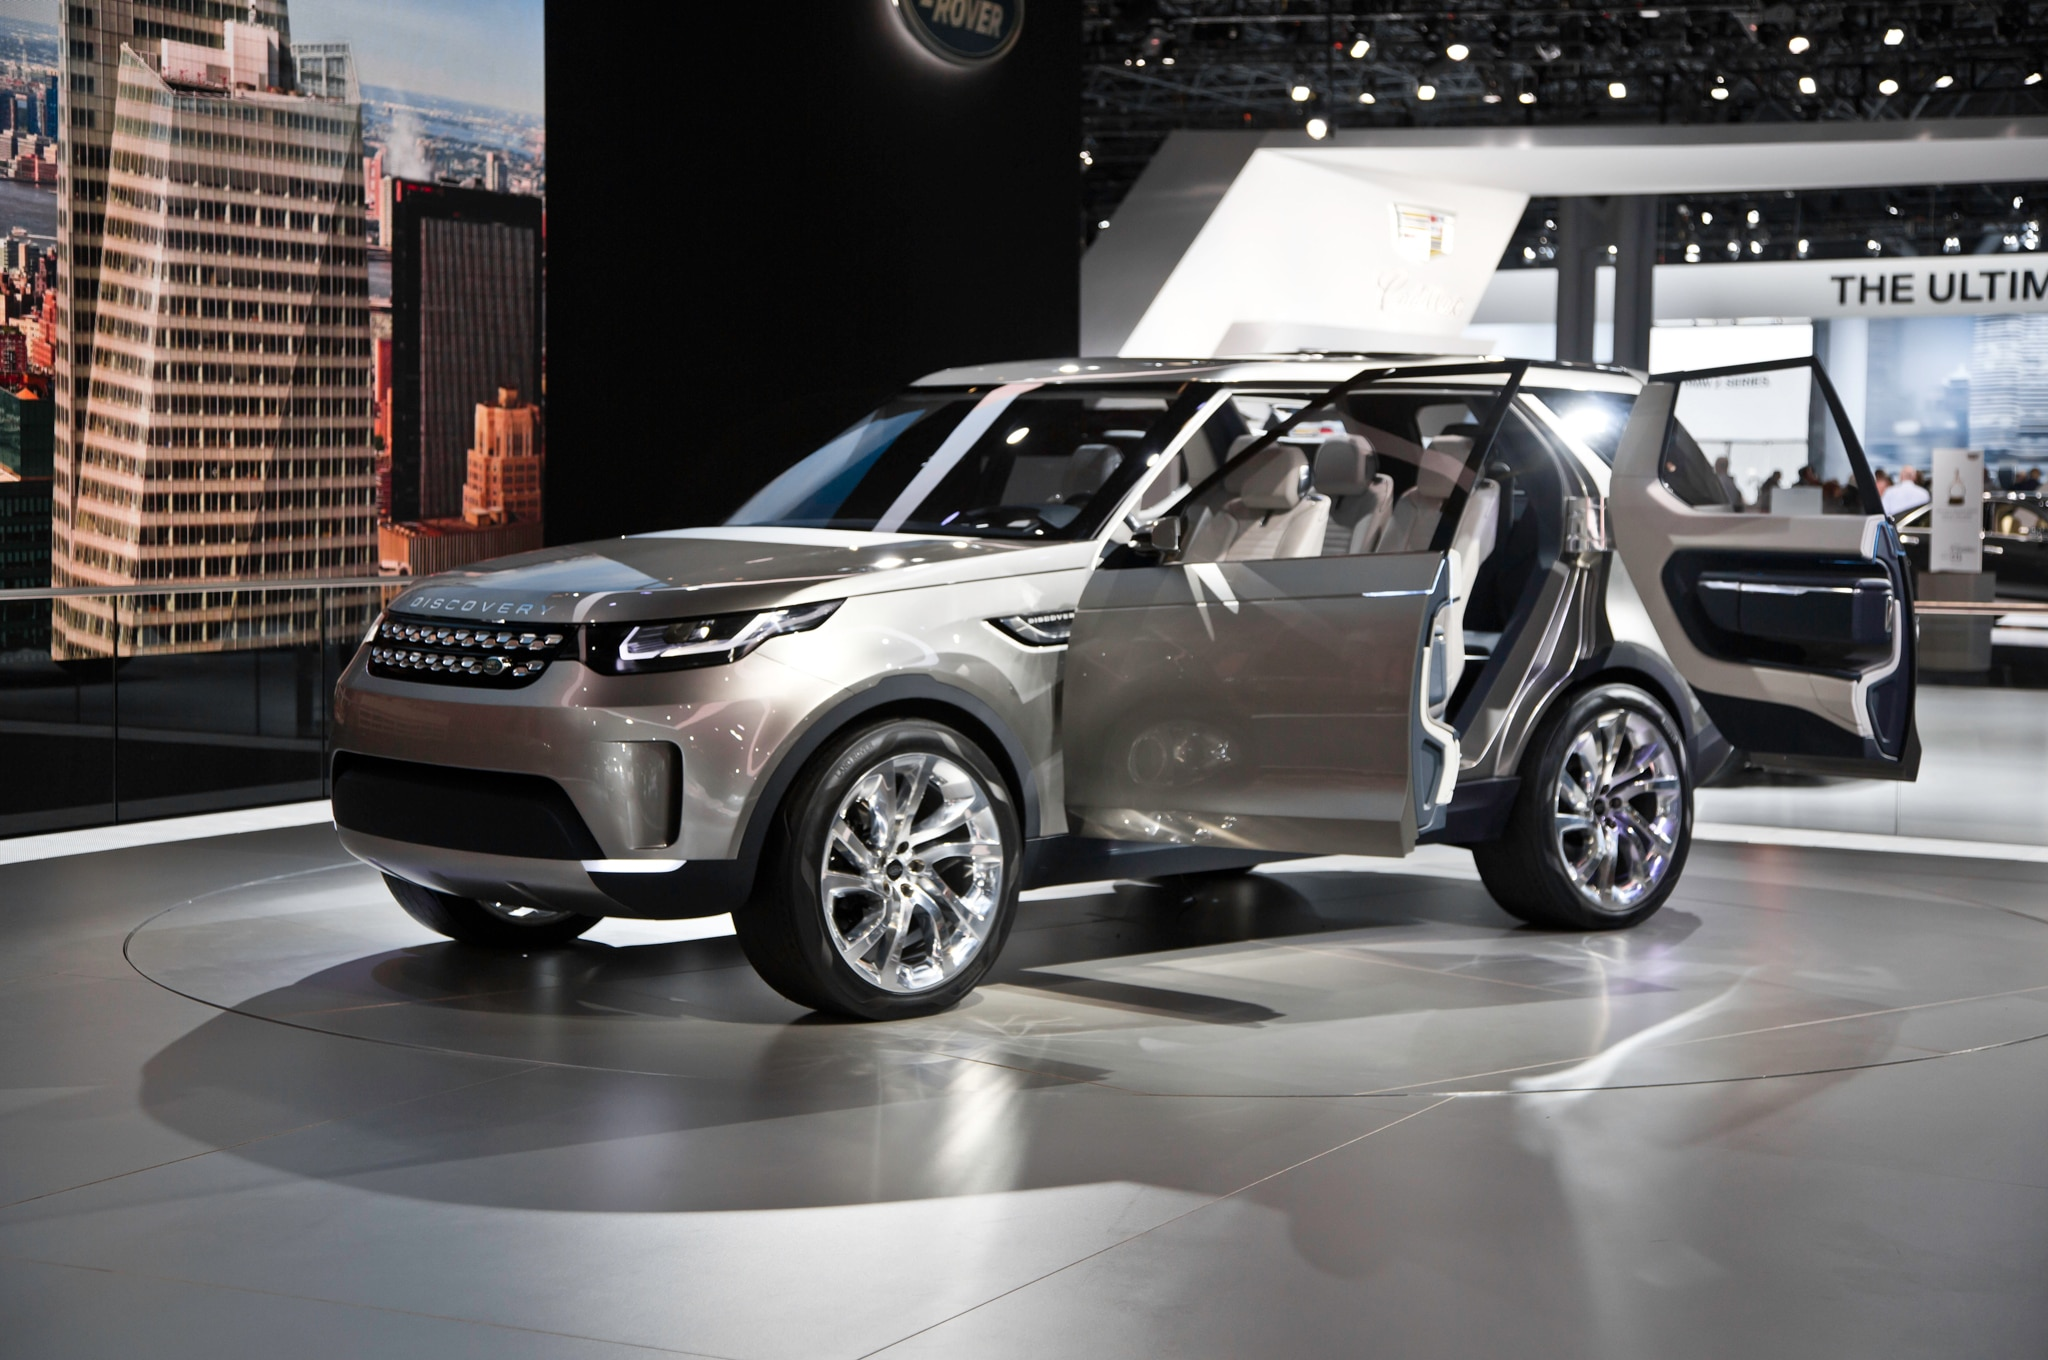 http://st.automobilemag.com/uploads/sites/11/2014/04/Land-Rover-Discovery-Vision-Concept-front-three-quarters.jpg